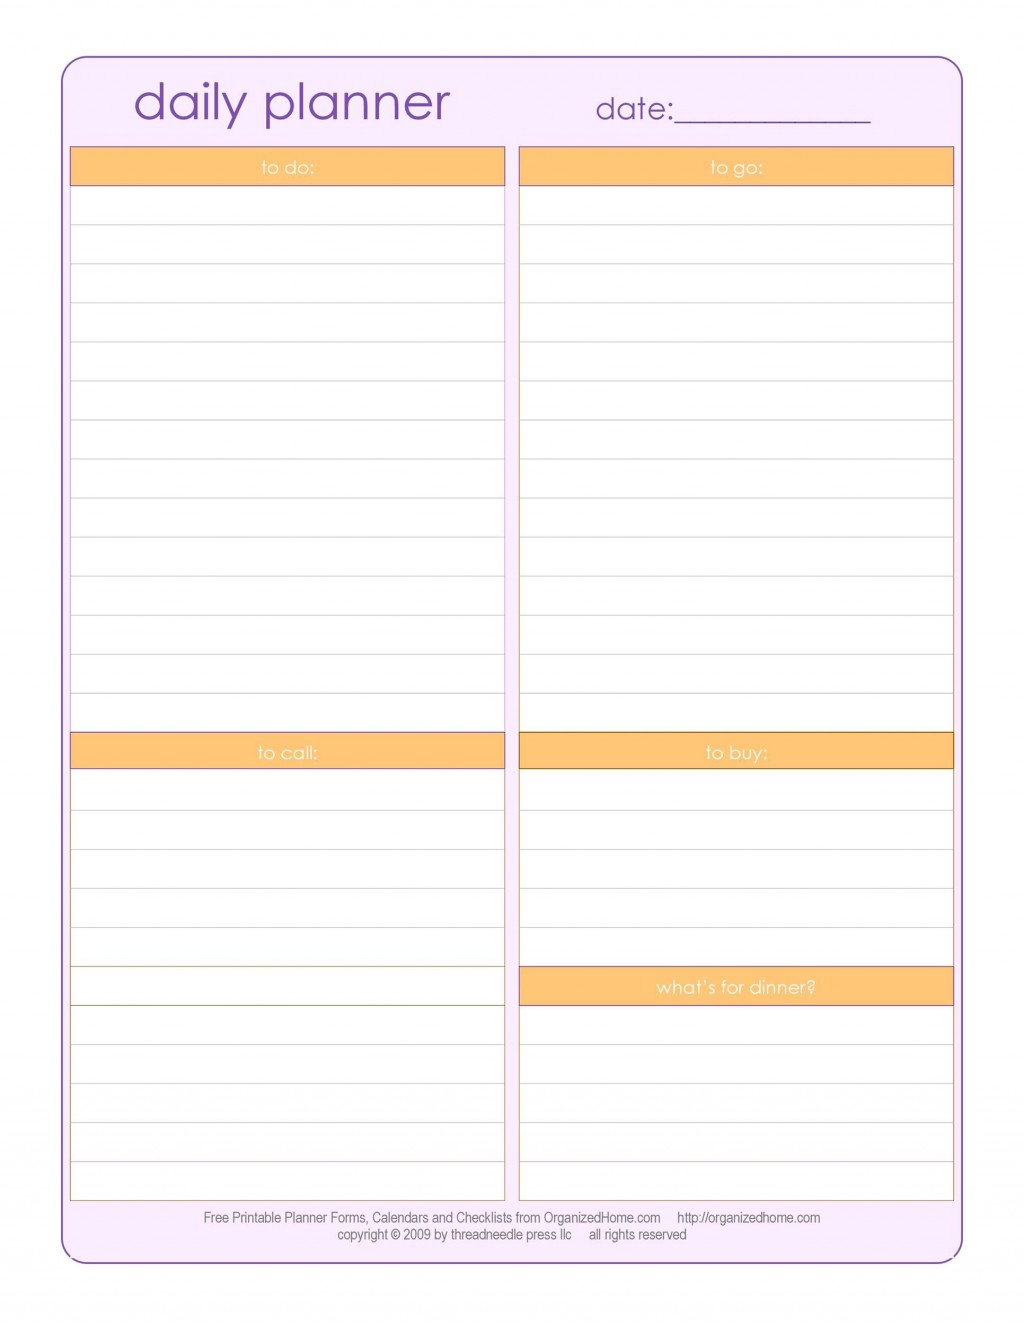 003 Best Printable Daily Schedule Template Inspiration Large